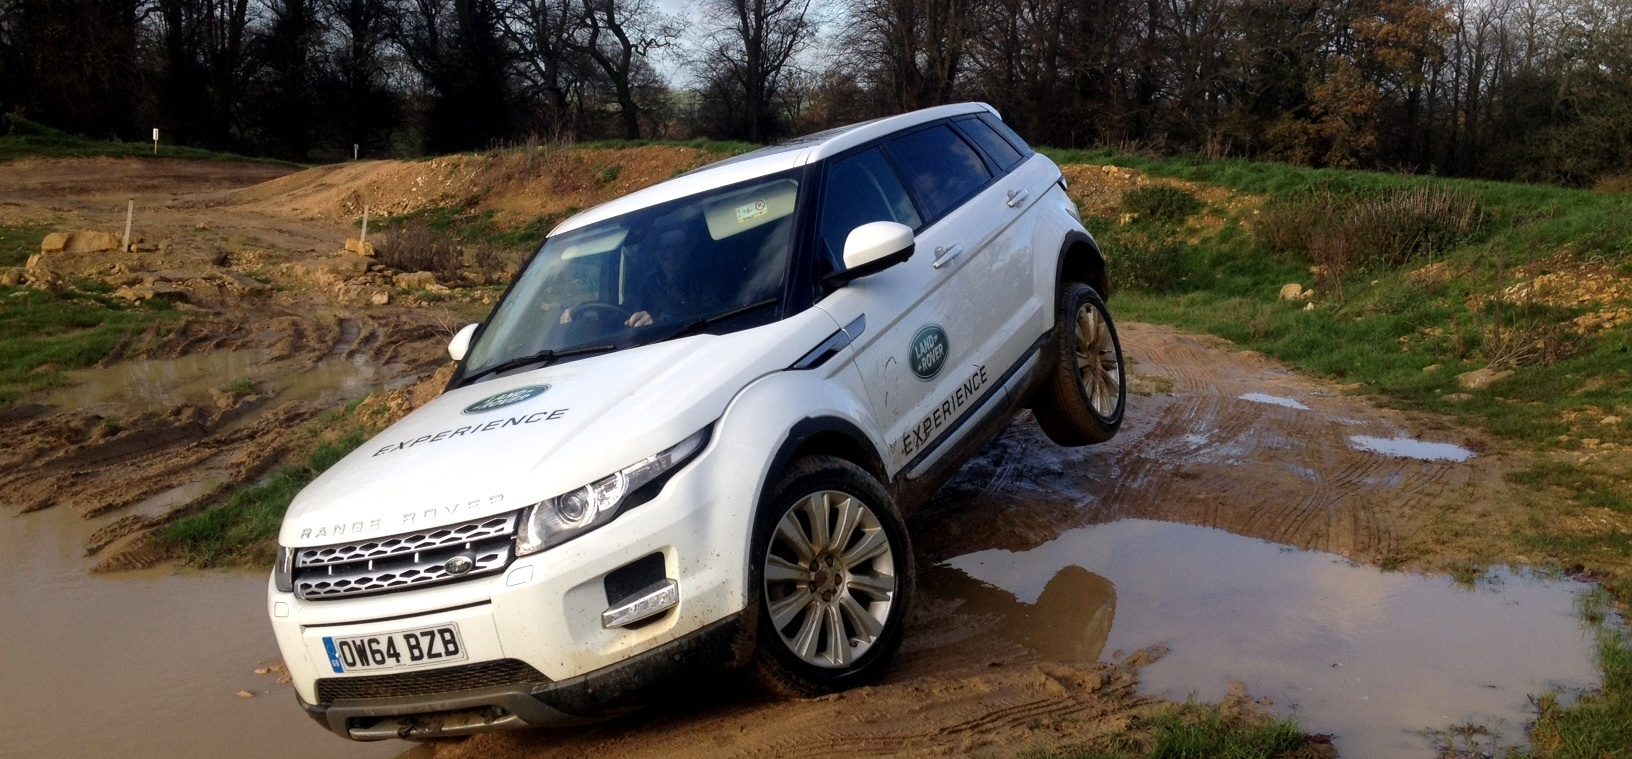 Full Day Land Rover Experience (Private)-4